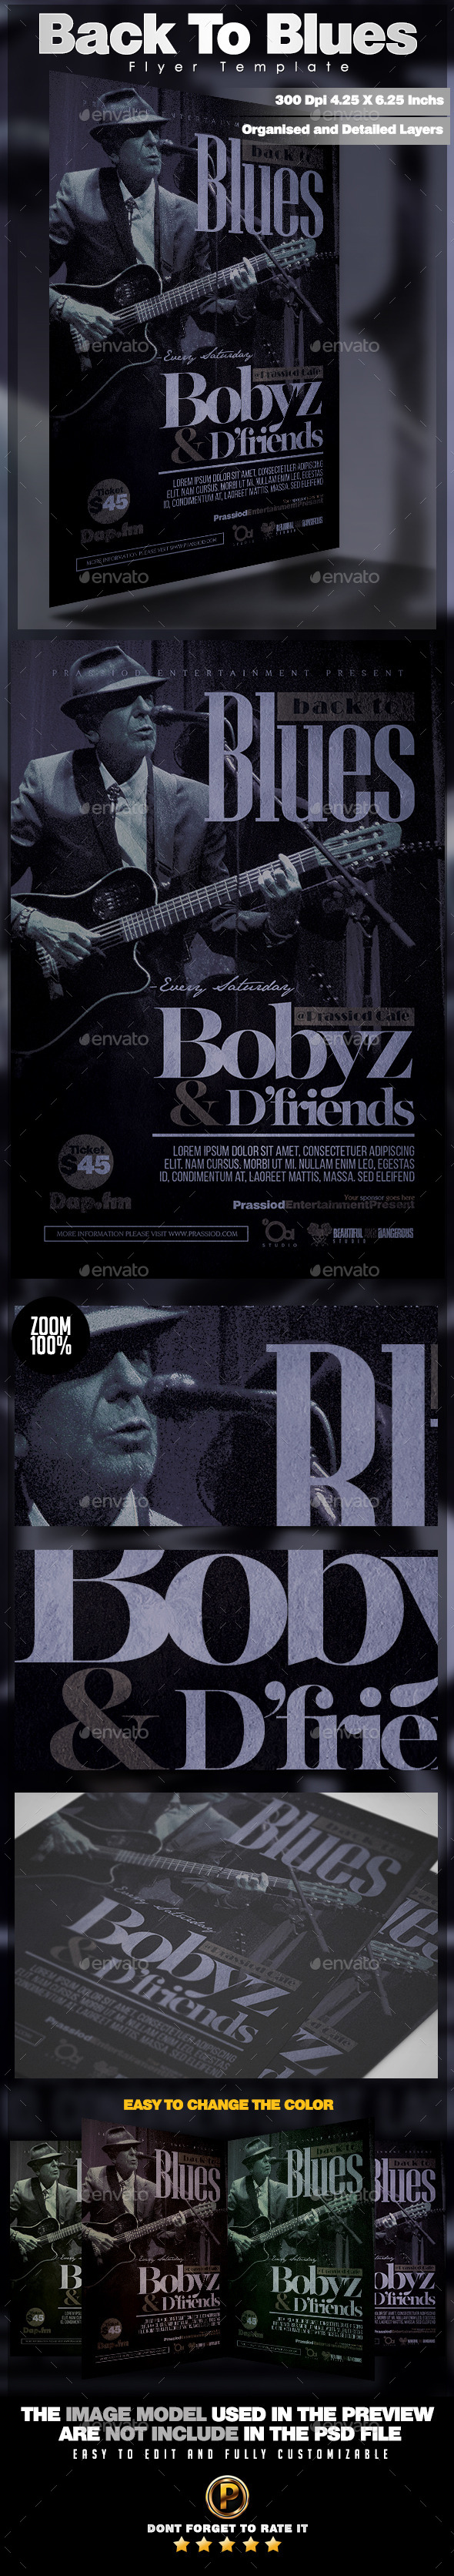 Back To Blues Flyer Template - Clubs & Parties Events